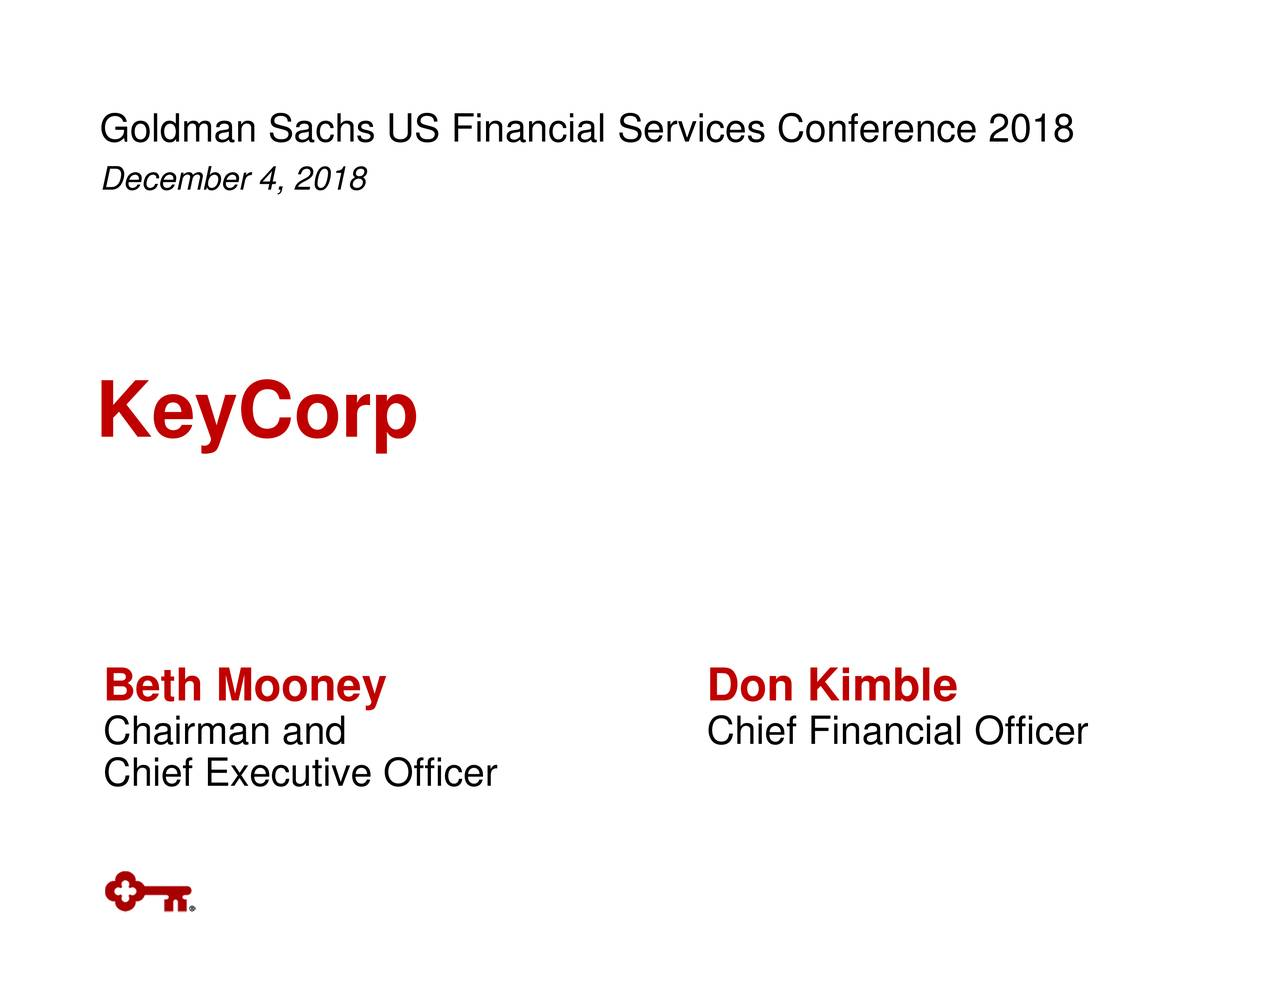 Golecanbea,20U8S Financial Services Conference 2018r KeyCorp